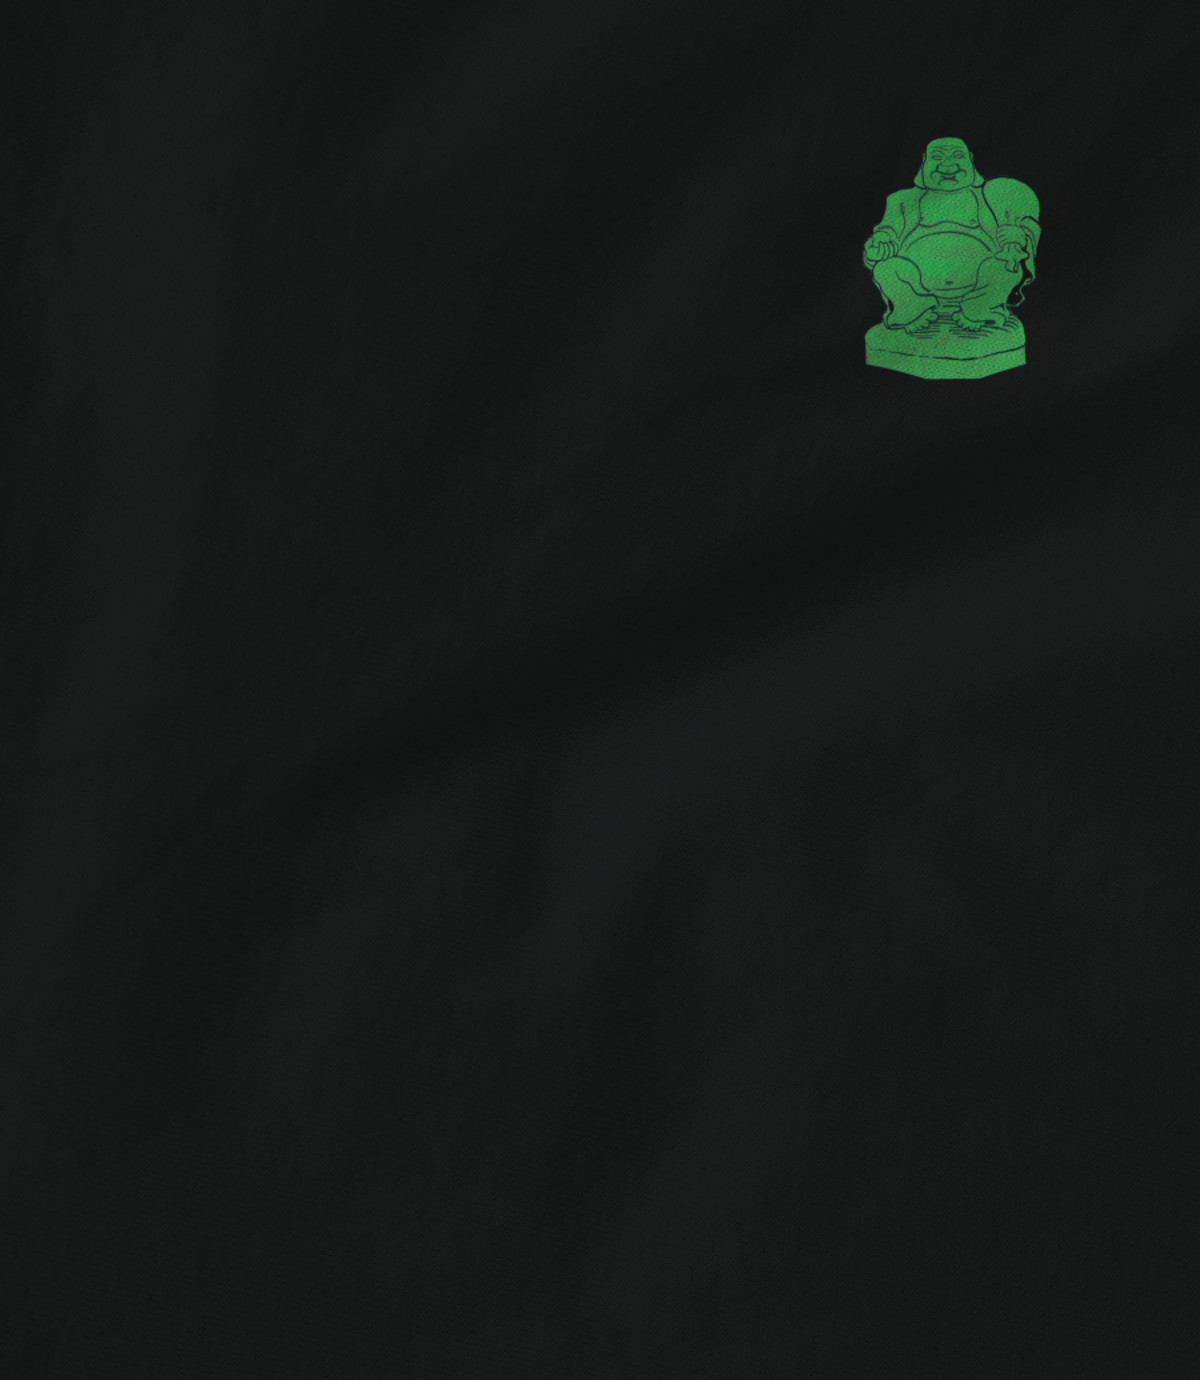 Harvey cliff lucky green buddha 1547158305